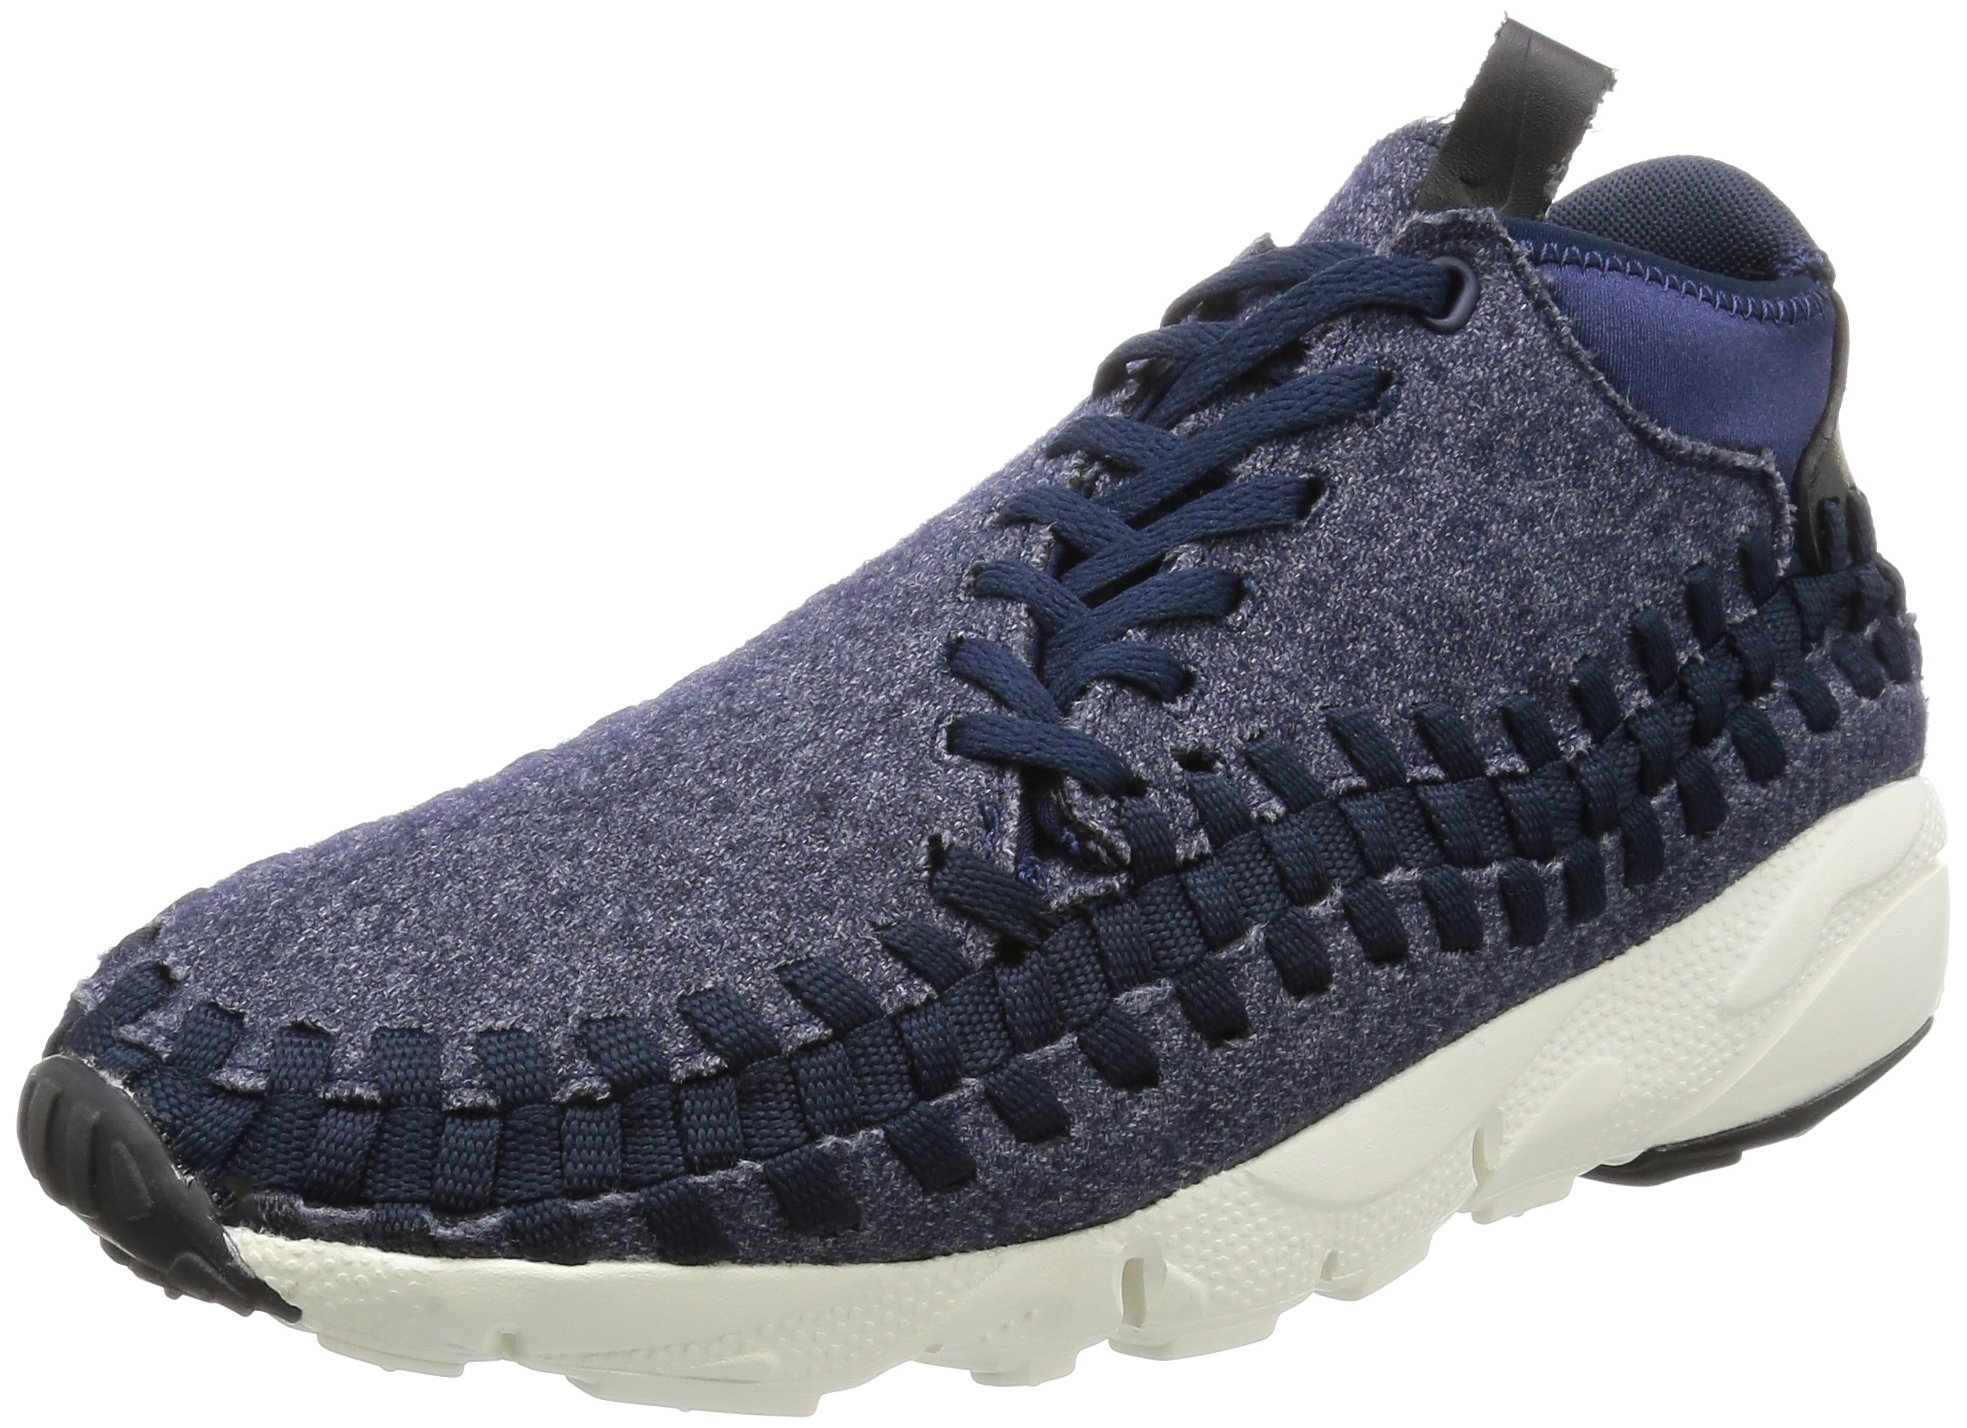 size 40 817da 718f0 Galleon - NIKE Men s Air Footscape Woven Chukka SE Obsidian Black-Sail-Black  857874-400 Shoe 8 M US